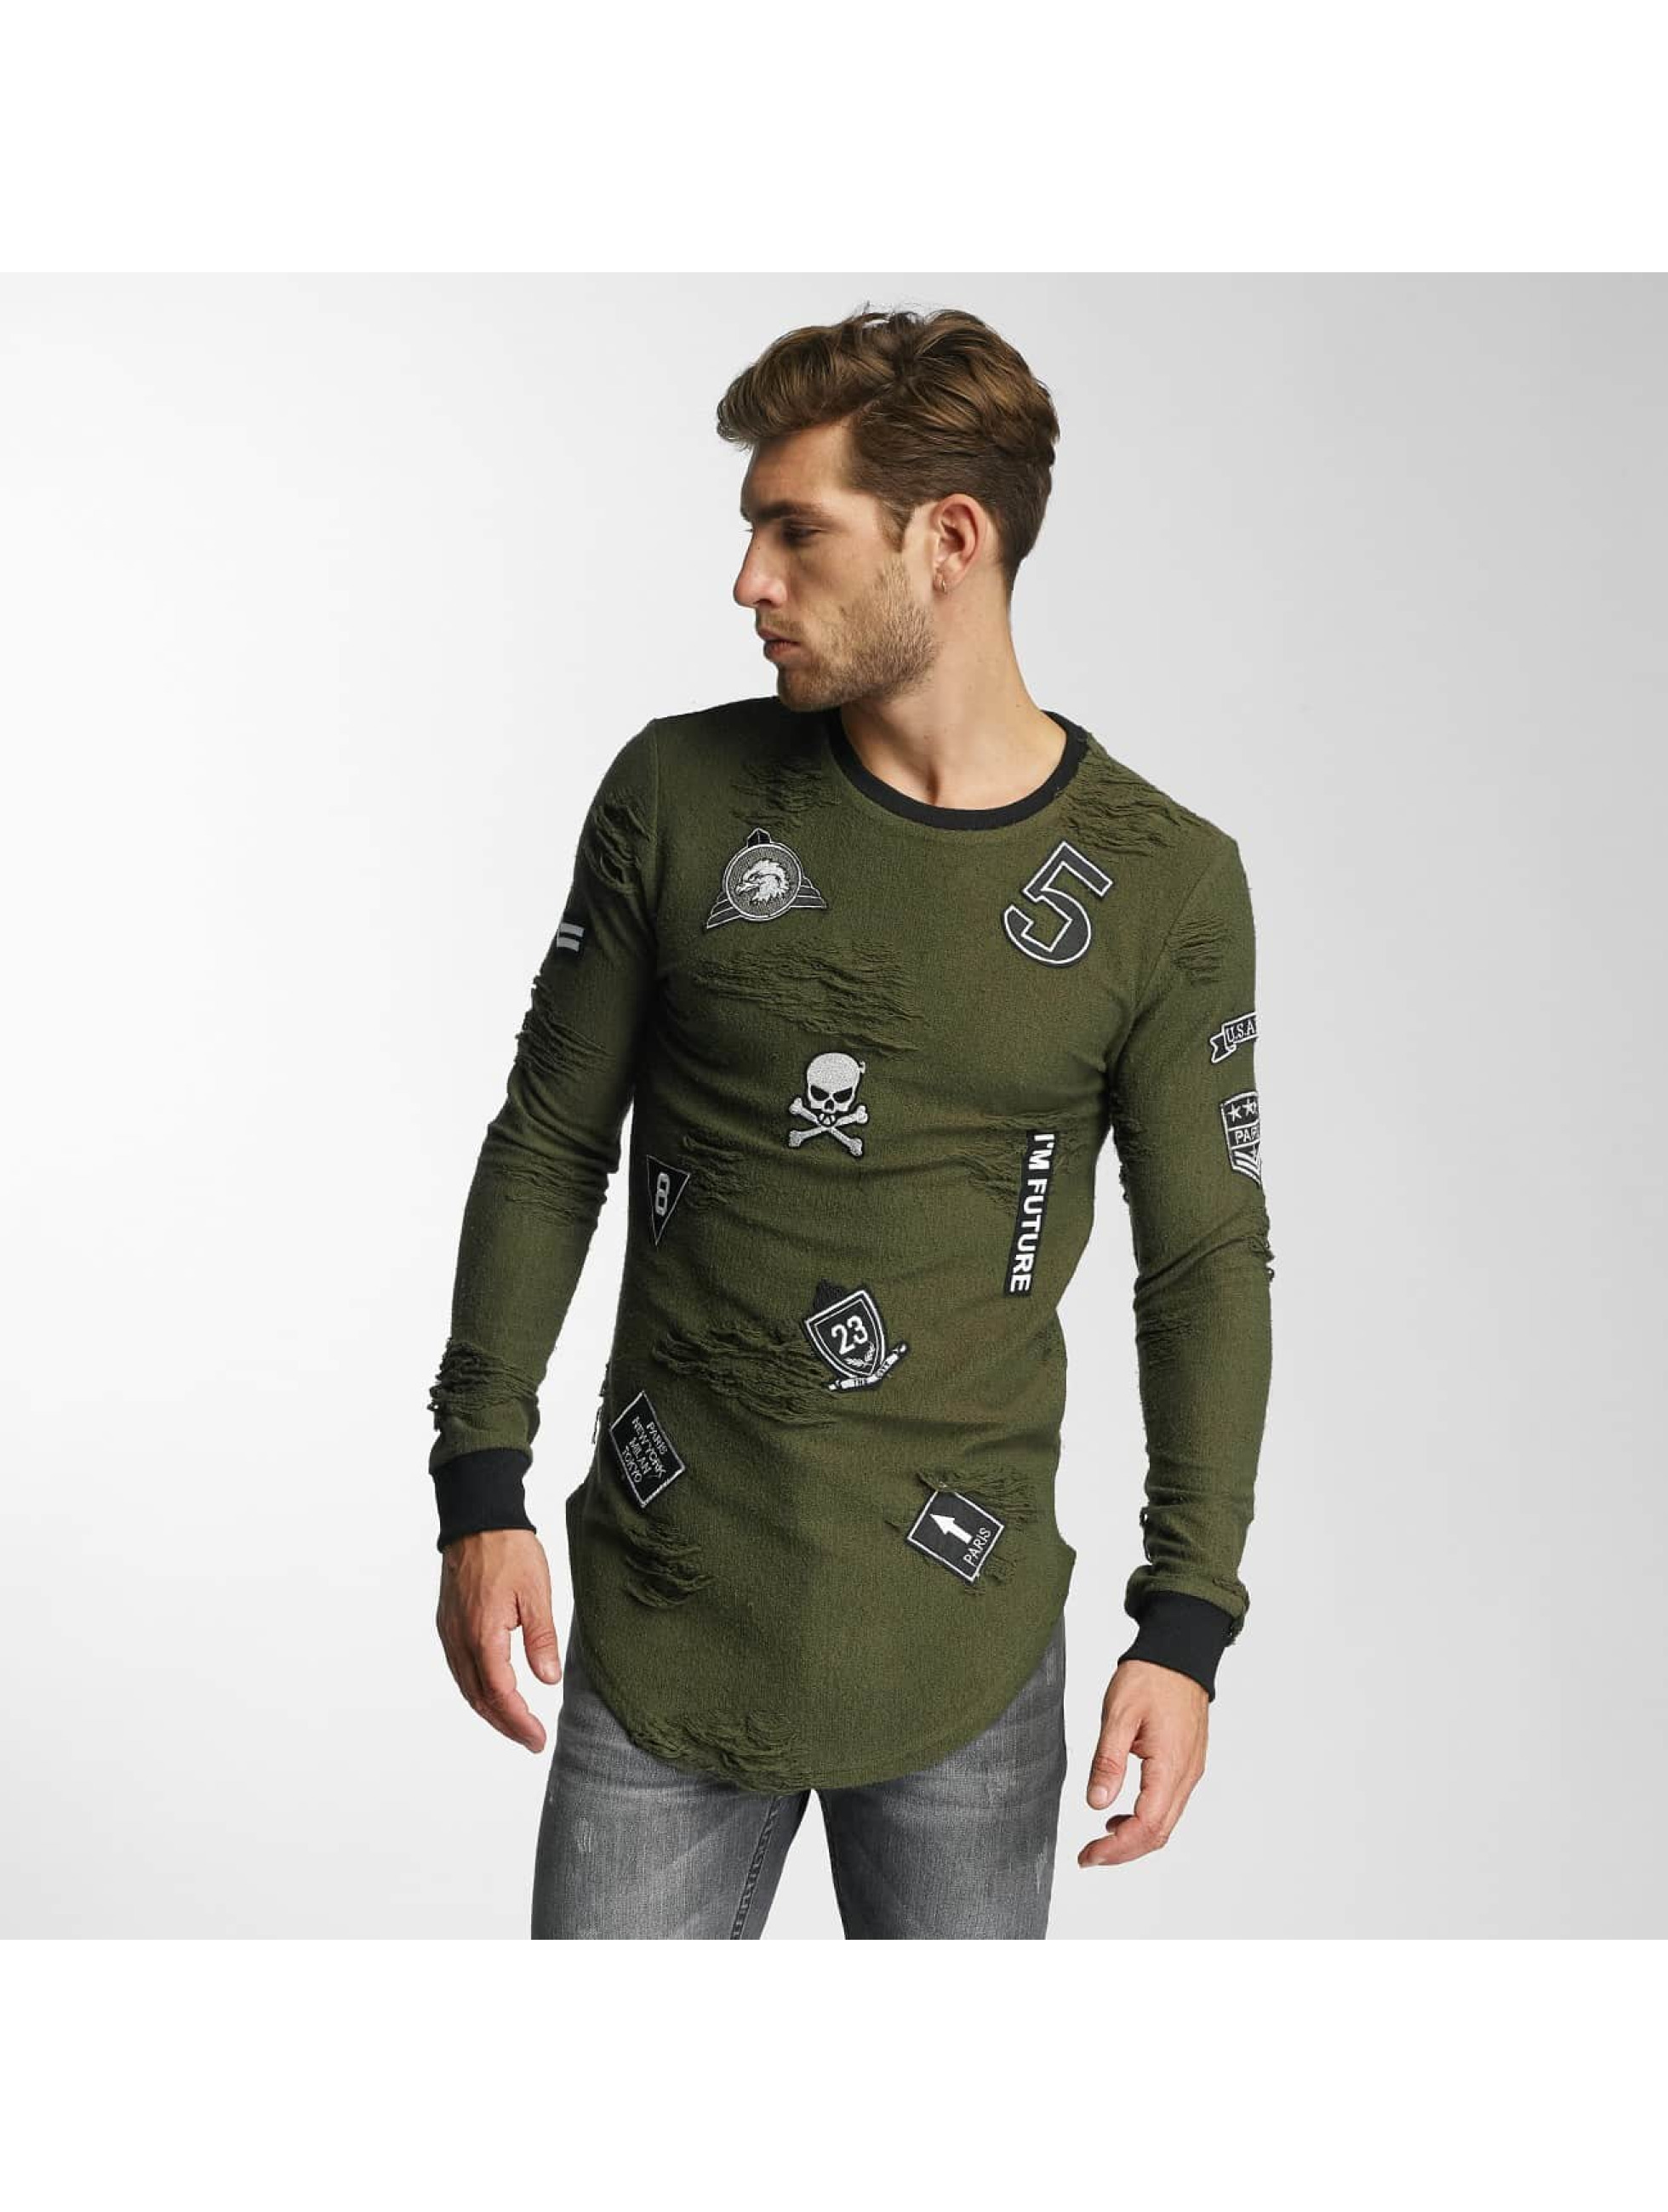 Paris Premium Pullover 5 green